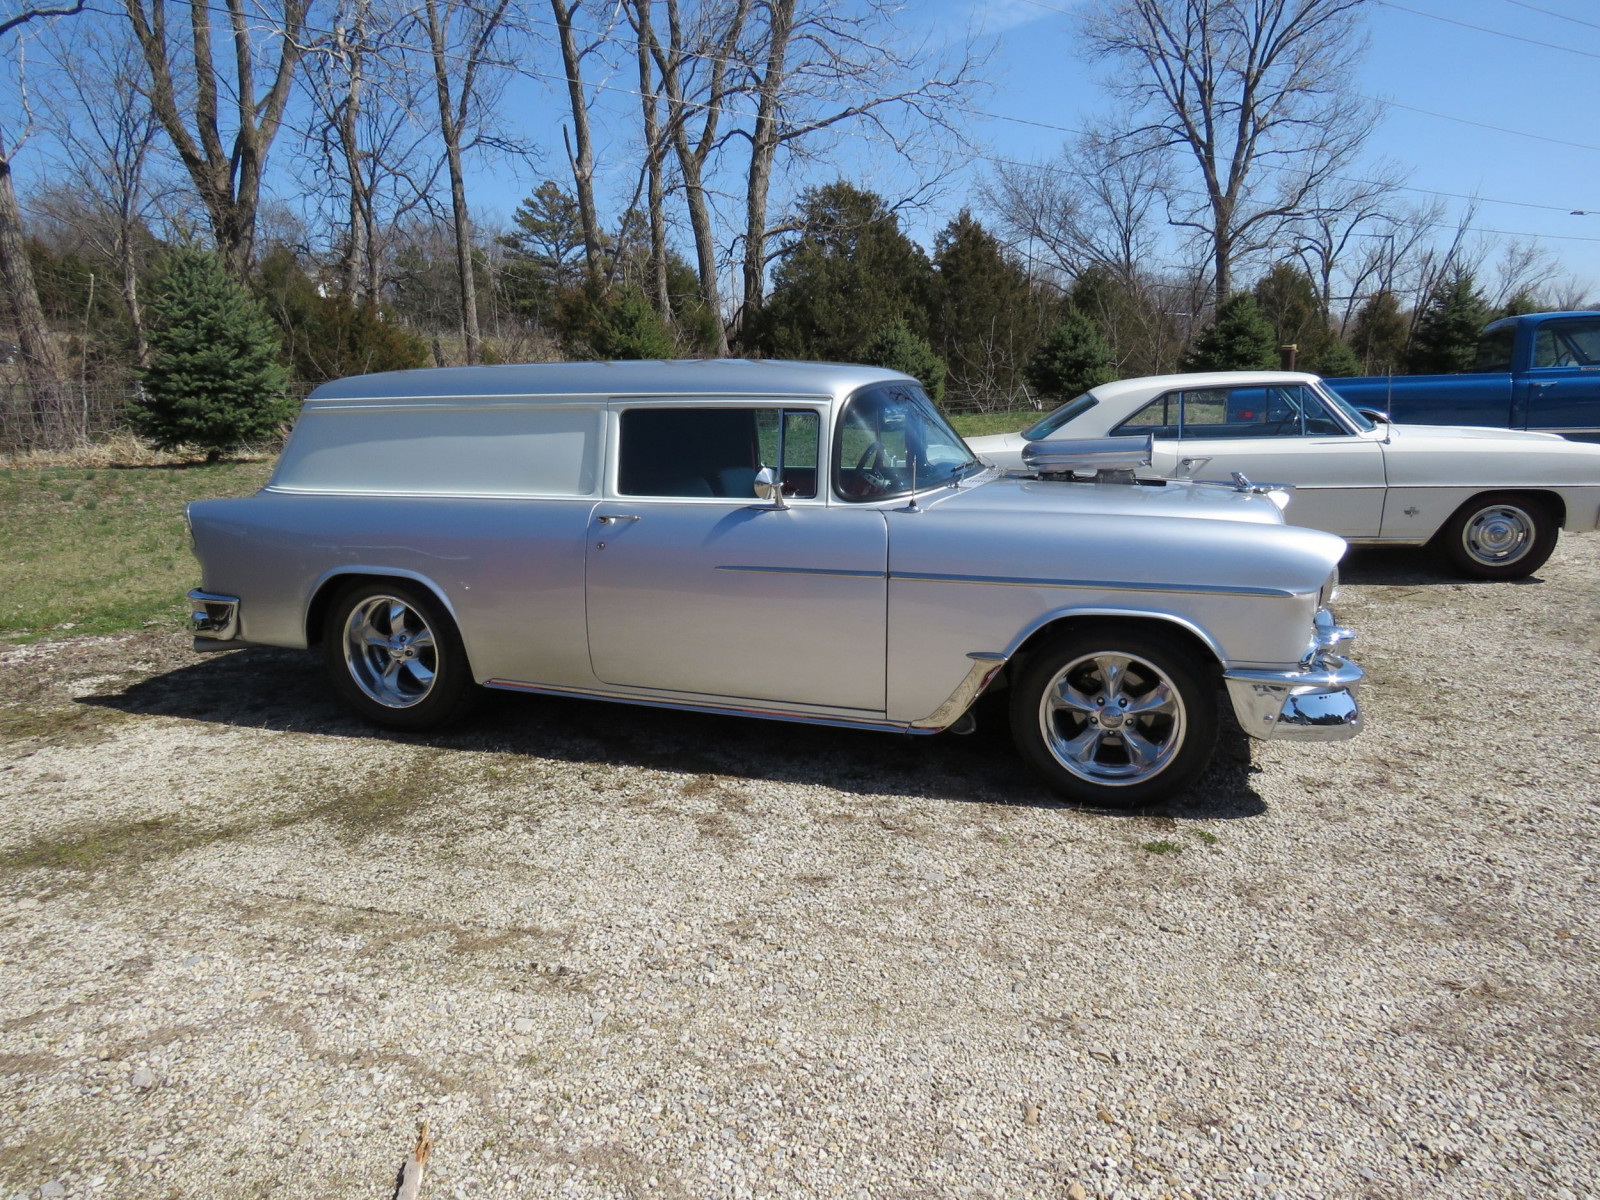 1955 Chevrolet Sedan Delivery Custom - Image 4